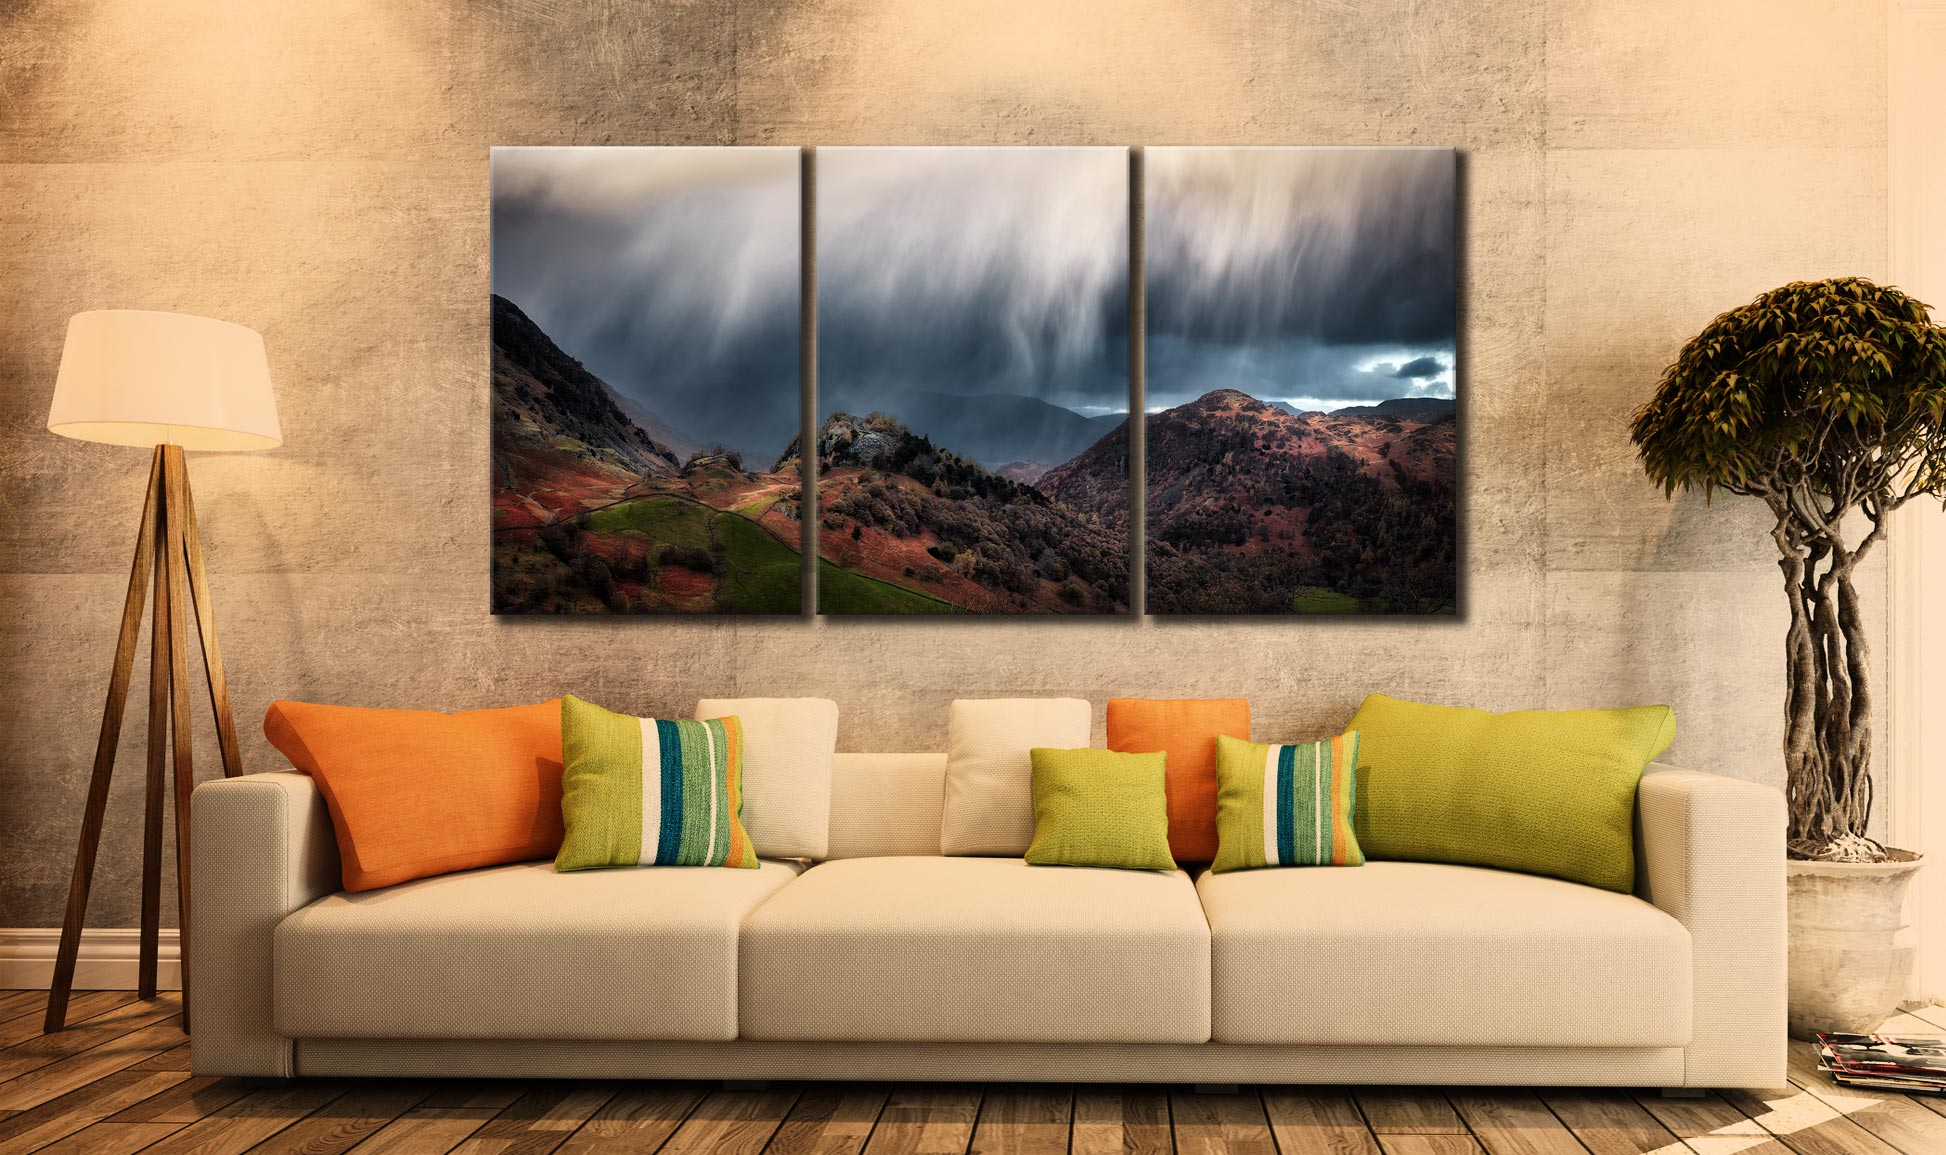 The Rains are a Coming - 3 Panel Canvas on Wall